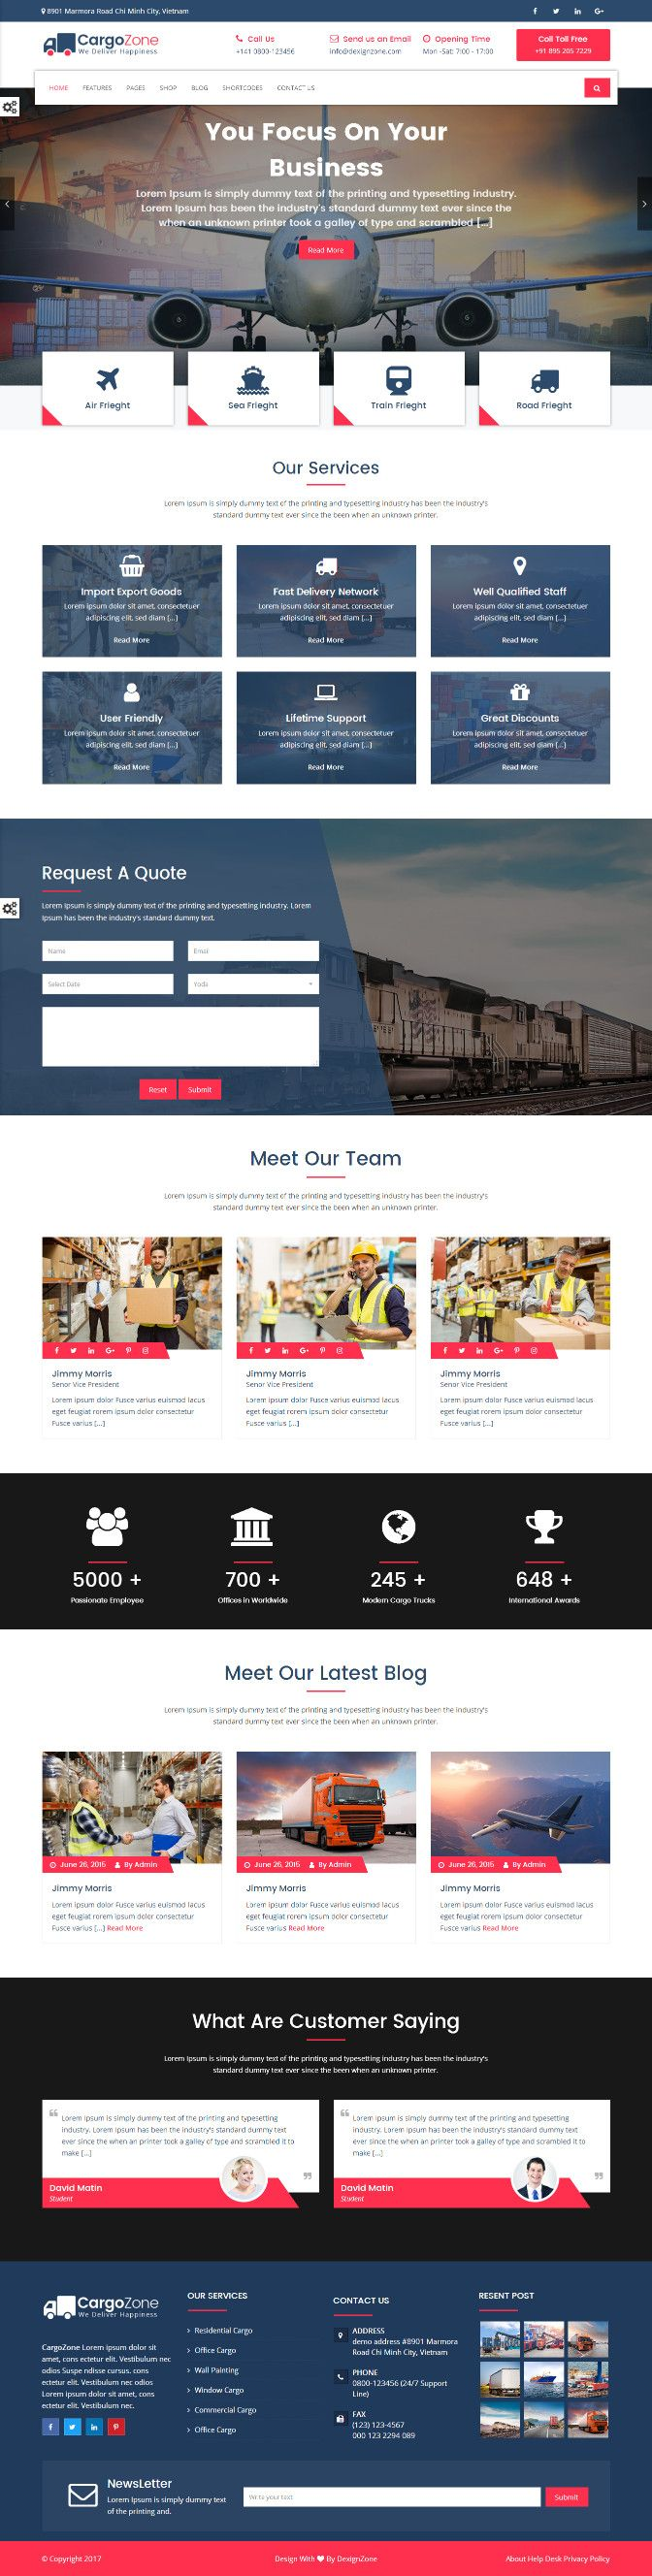 Multipurpose Website Html Template - Ready To Use  Meet our best premium multipurpose theme is specially designed for anyone and without having to spend hours on complexes coding. create customized beautiful layouts, designs individual settings in your timeframe.  #Cargo #Transport #Logistic #Multipurpose #ResponsivTemplate #Garder #Education #Health #Fitness